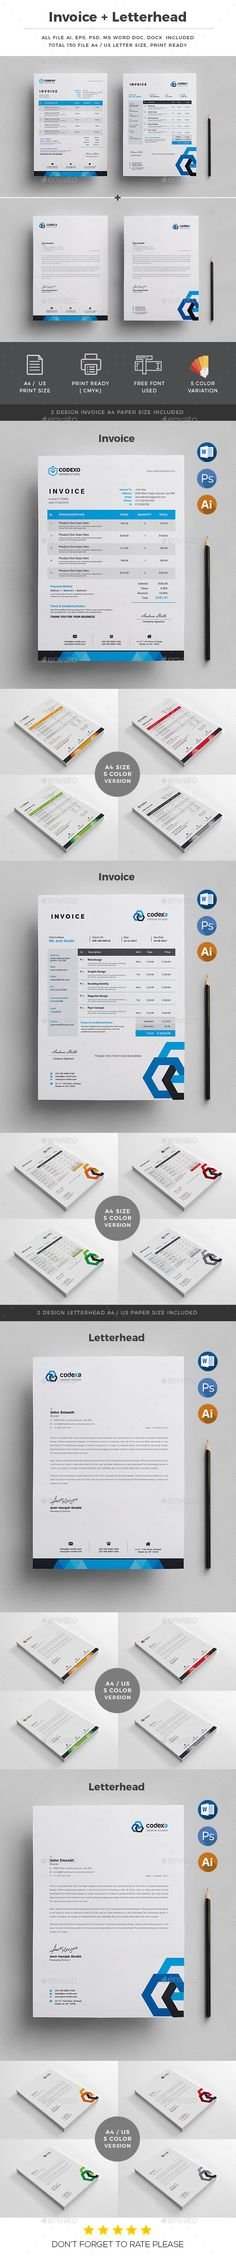 Invoice Best Stationery printing and Print templates ideas - invoice print